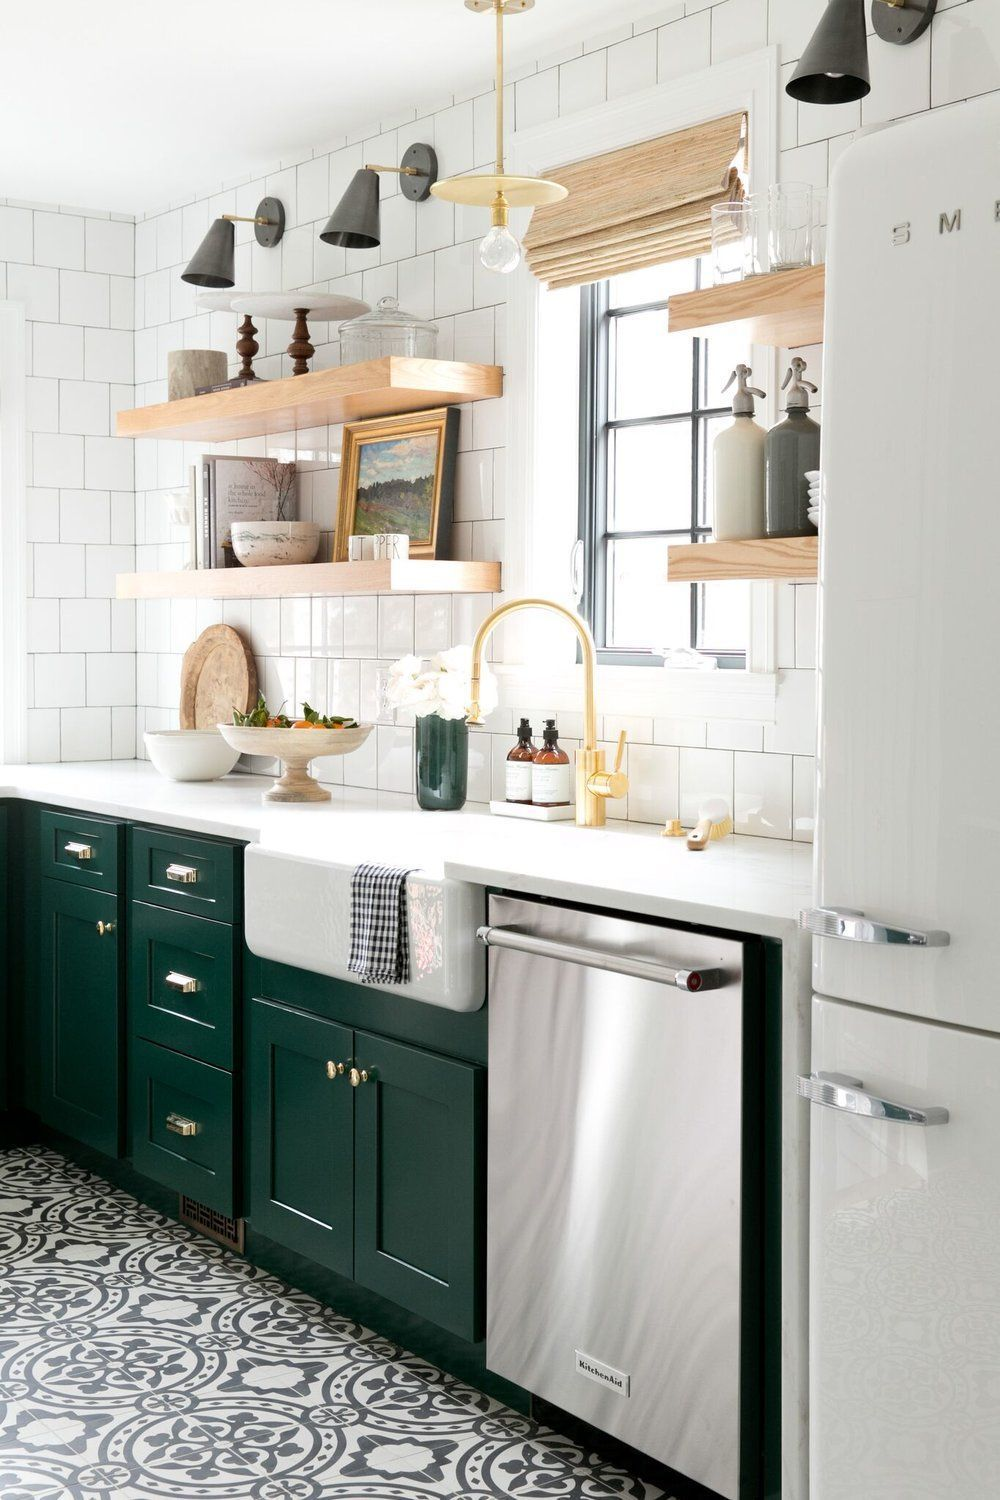 5 Exhilarating Small Kitchen Cabinets Walmart Ideas With Images Small Modern Kitchens Green Kitchen Cabinets Modern Kitchen Design